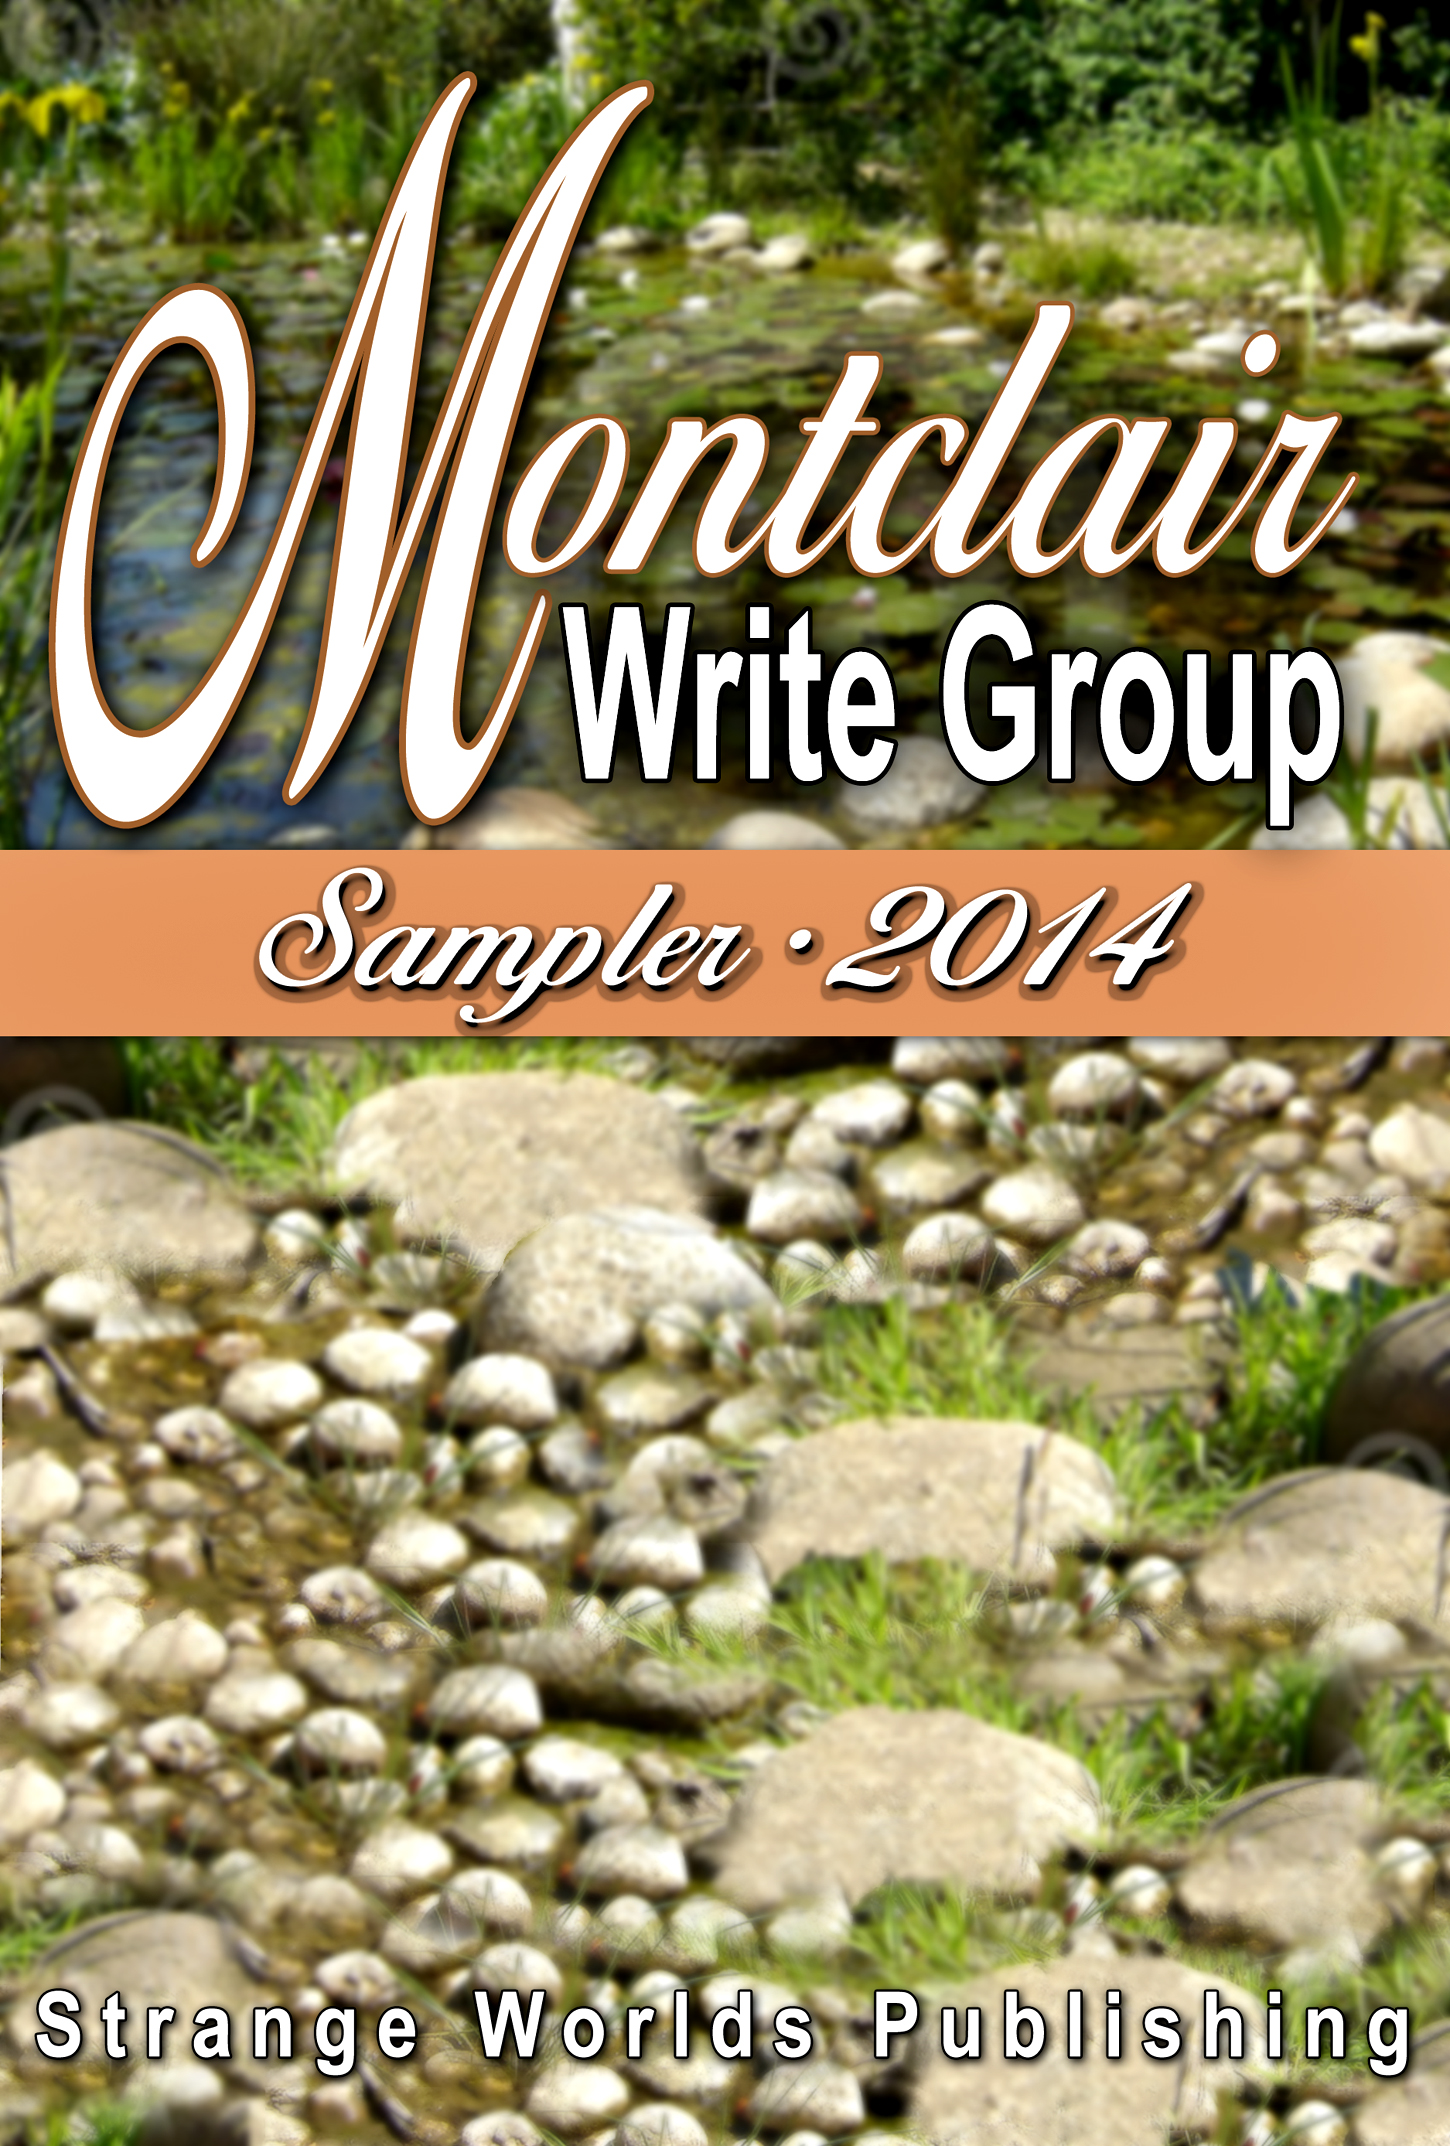 Montclair Write Group Sampler 2014